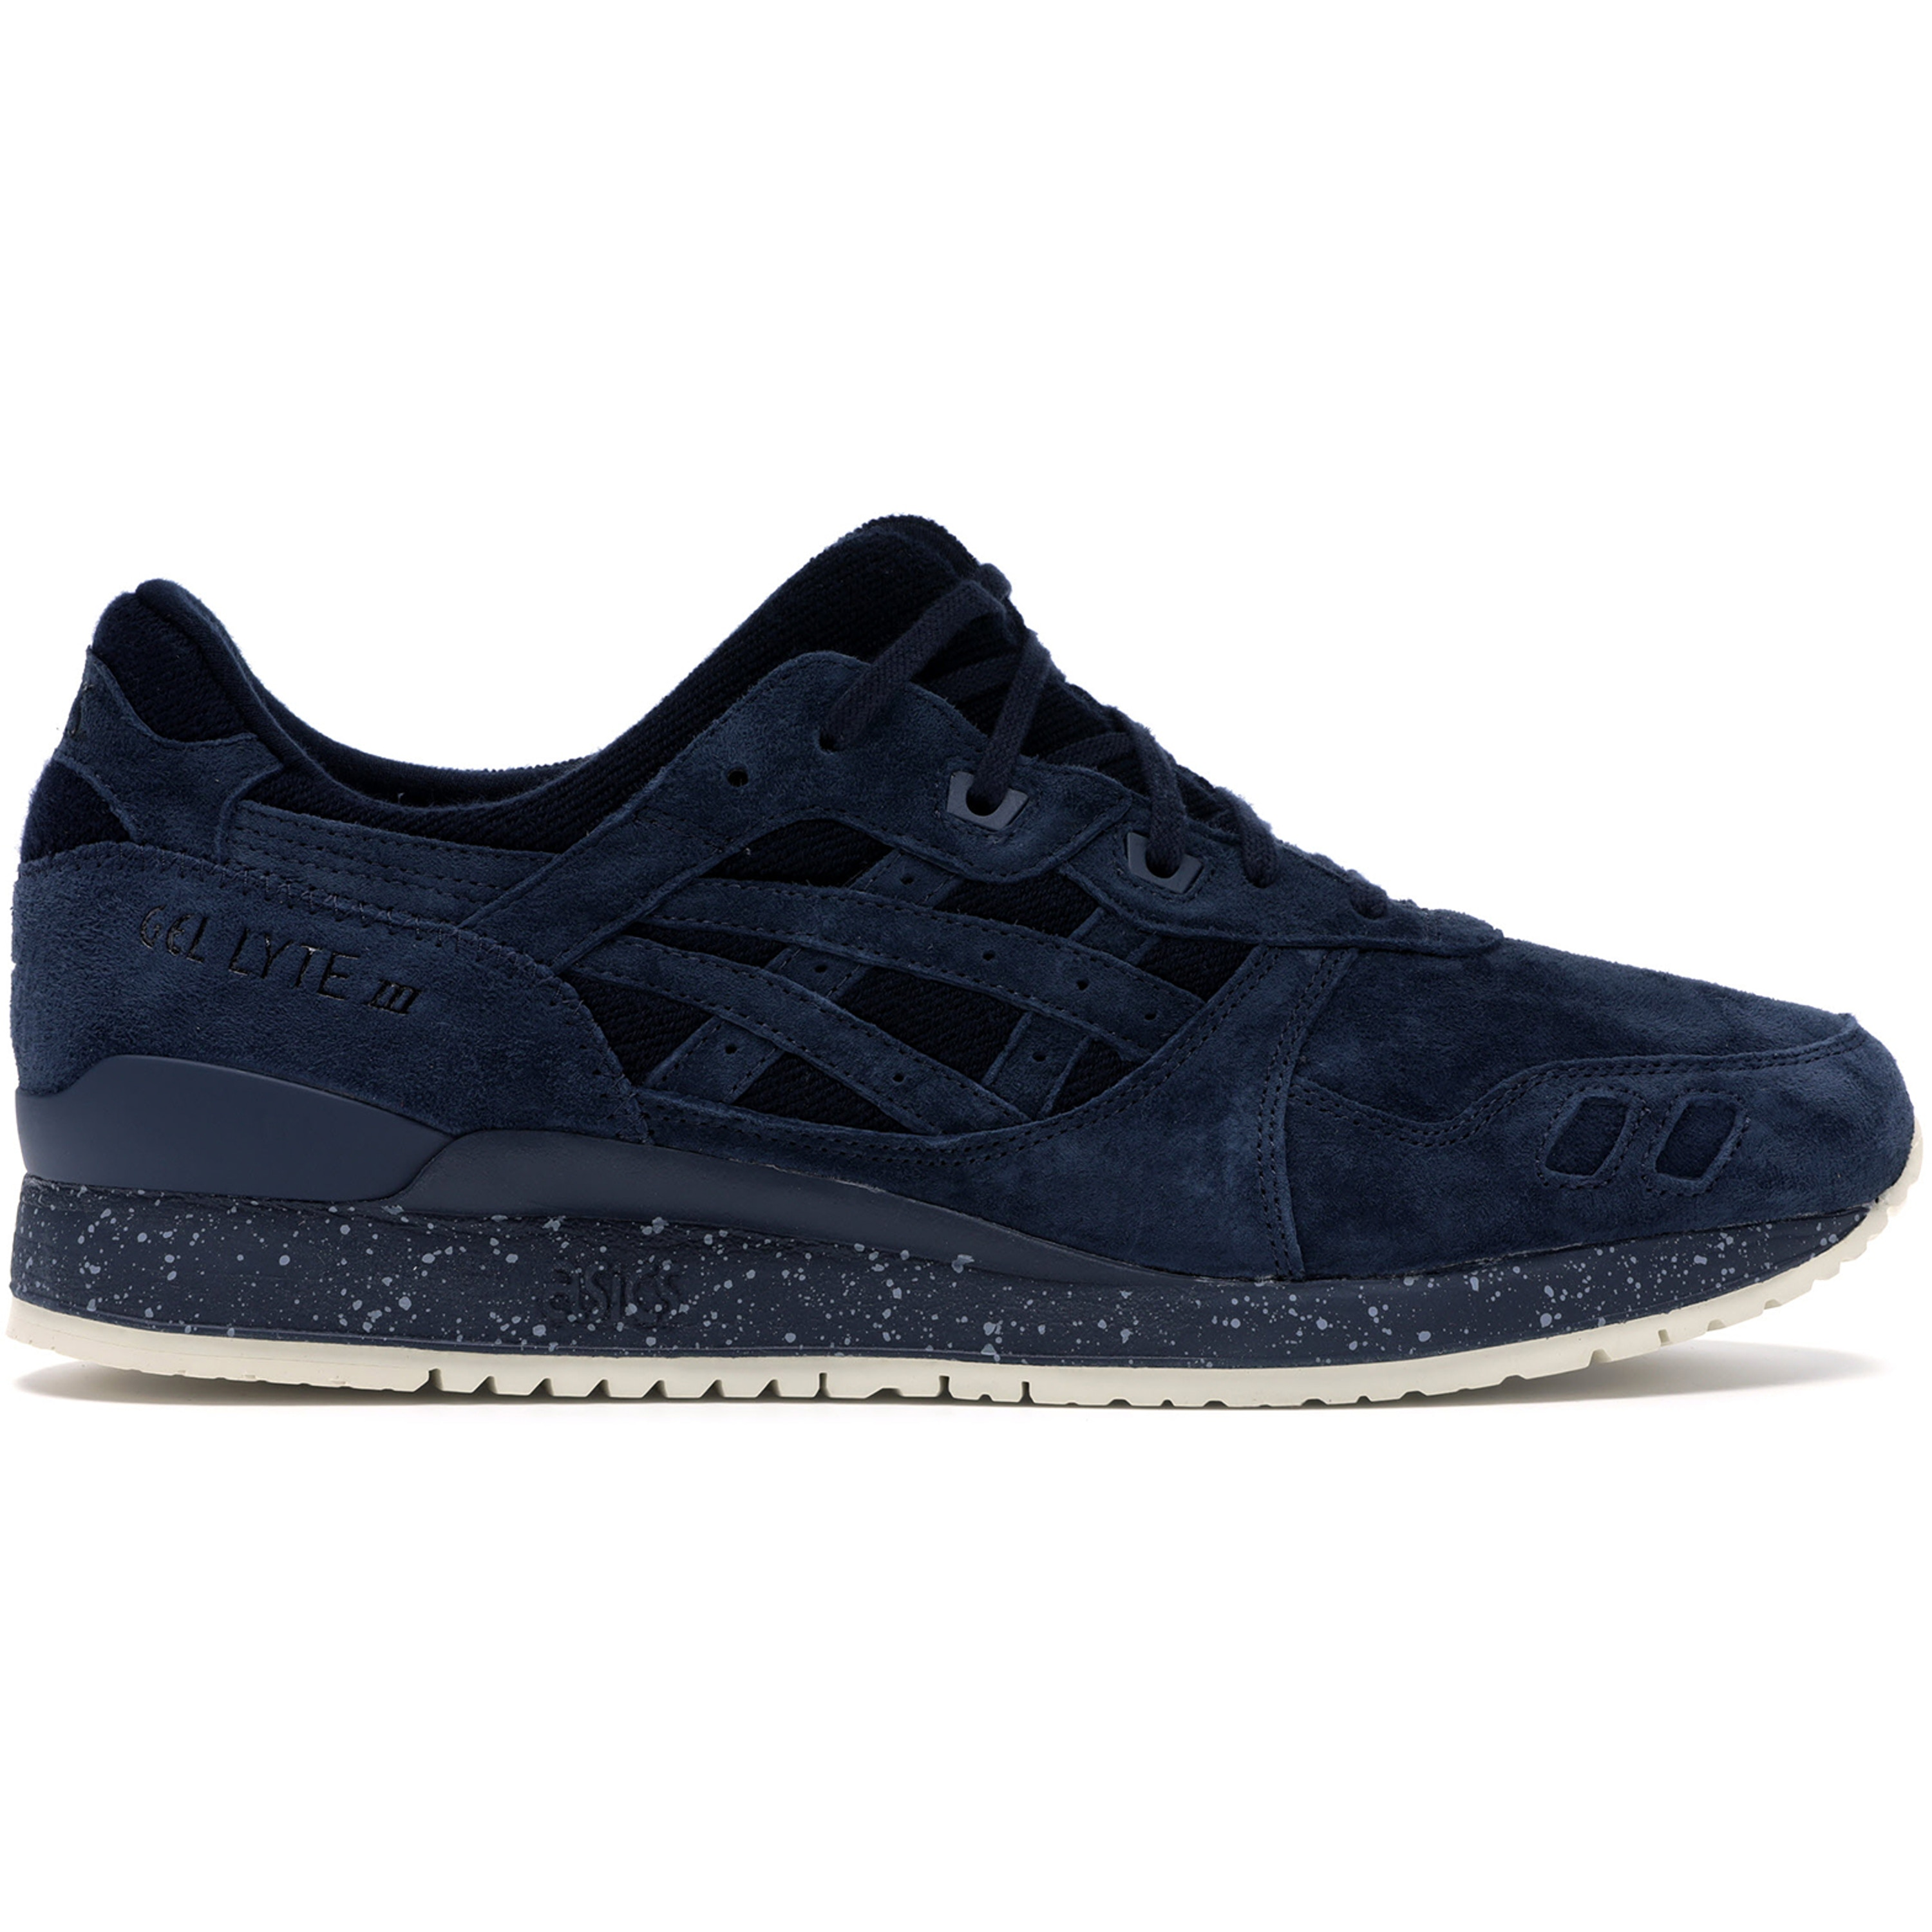 Asics Gel-Lyte III Reigning Champ Indian Ink (H53GK-5050)